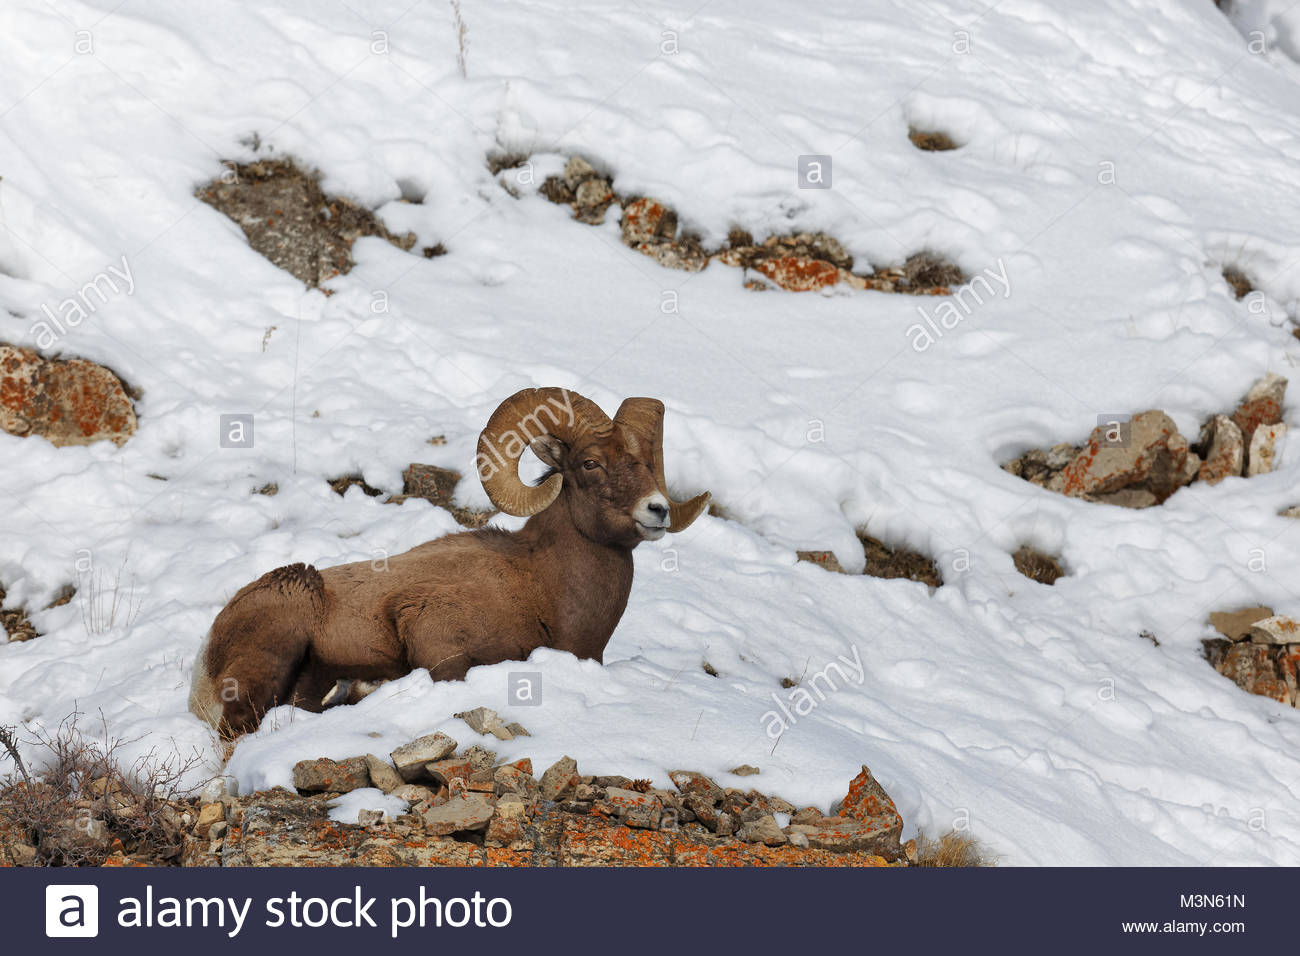 Bighorn sheep (Ovis canadensis) Ram laying in snow - Stock Image